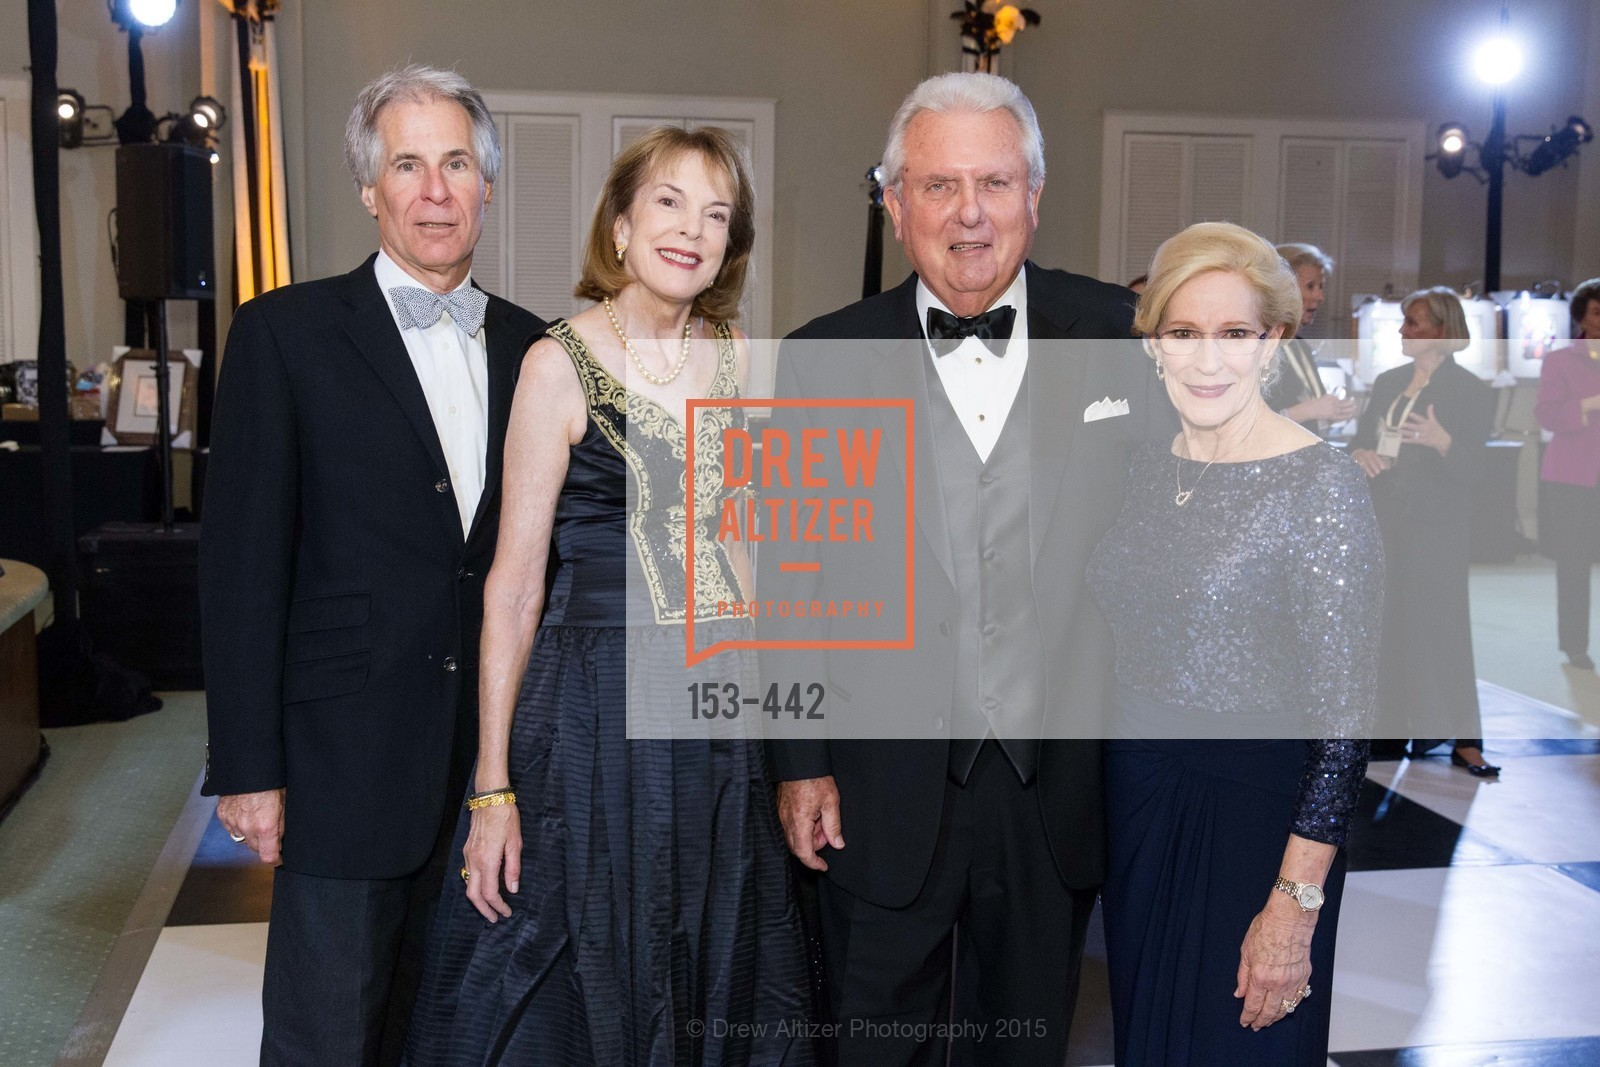 Wally Wertsch, Eve Wertsch, Lee Tyree, Misty Tyree, Metropolitan Club Presents THE CENTENNIAL GALA, Metropolitan Club. 640 Sutter Street, November 5th, 2015,Drew Altizer, Drew Altizer Photography, full-service agency, private events, San Francisco photographer, photographer california